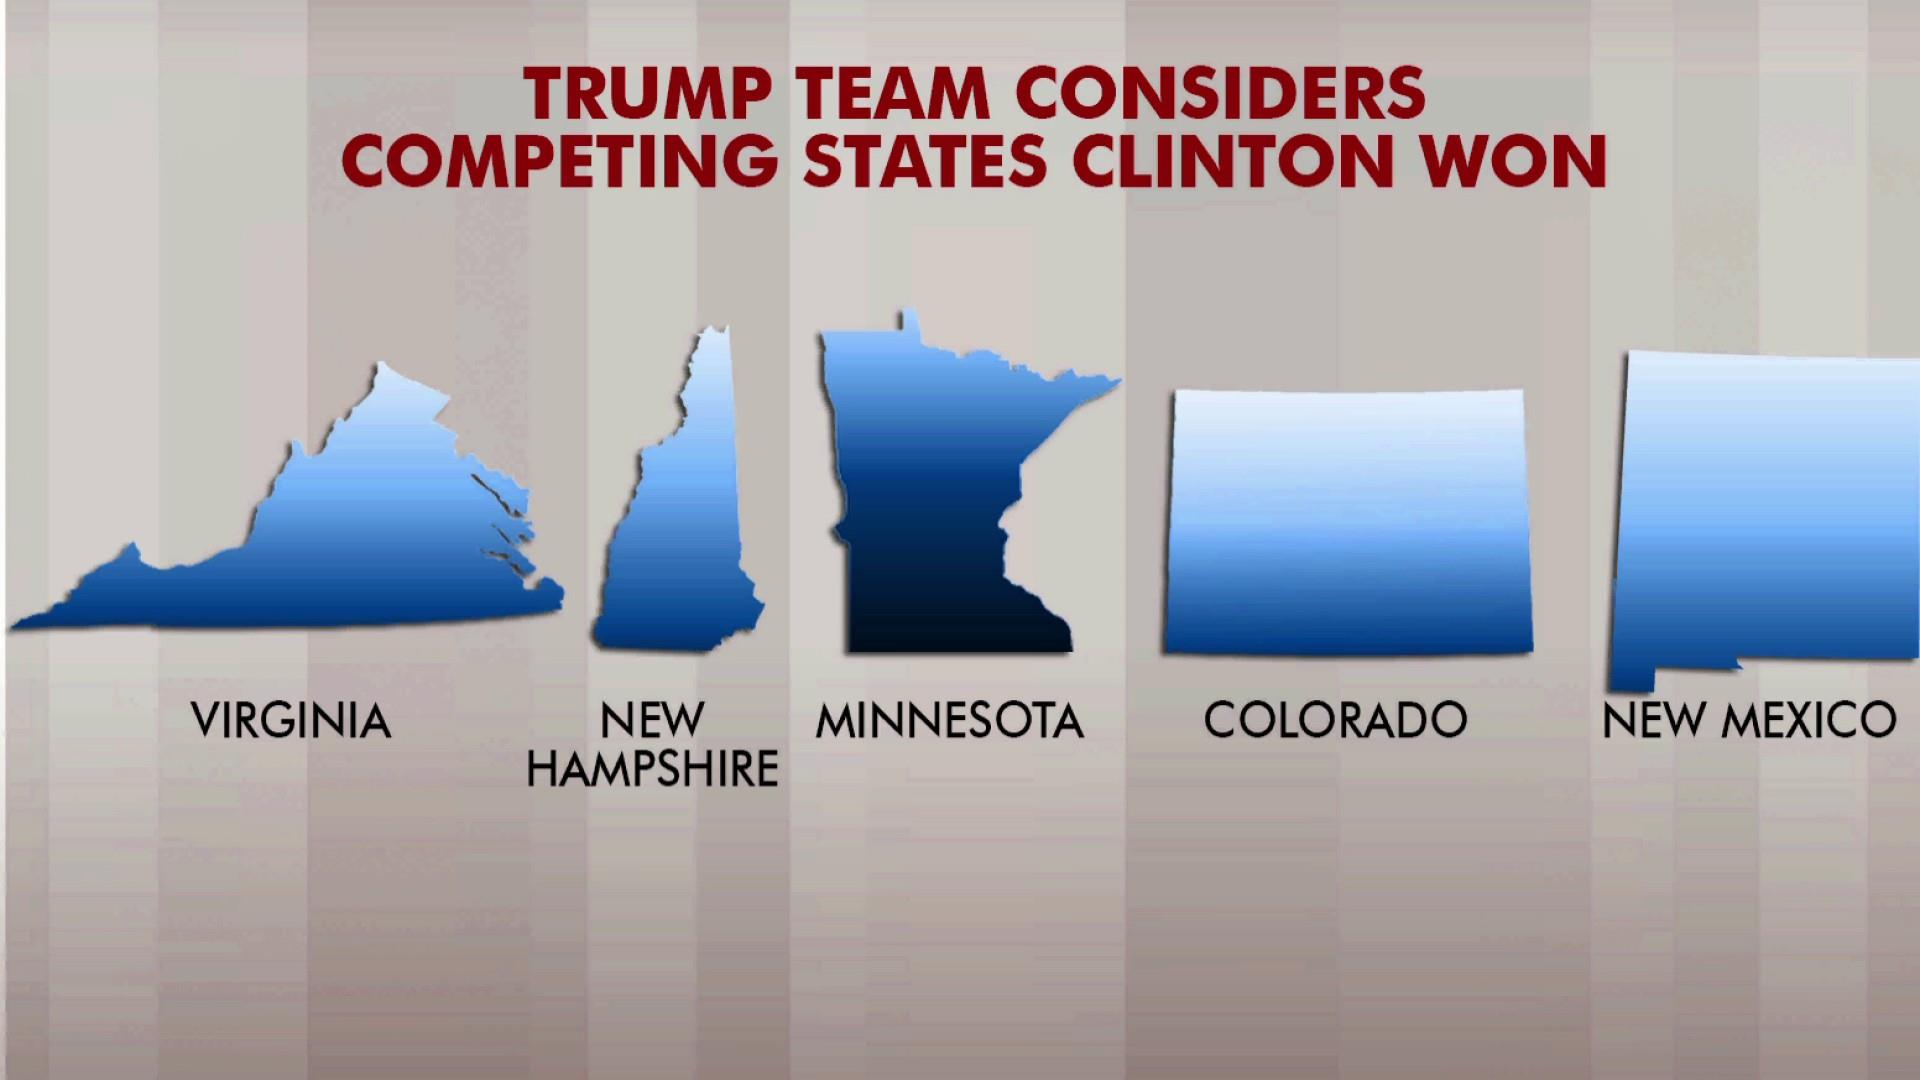 Trump campaign team looks at targeting Clinton states